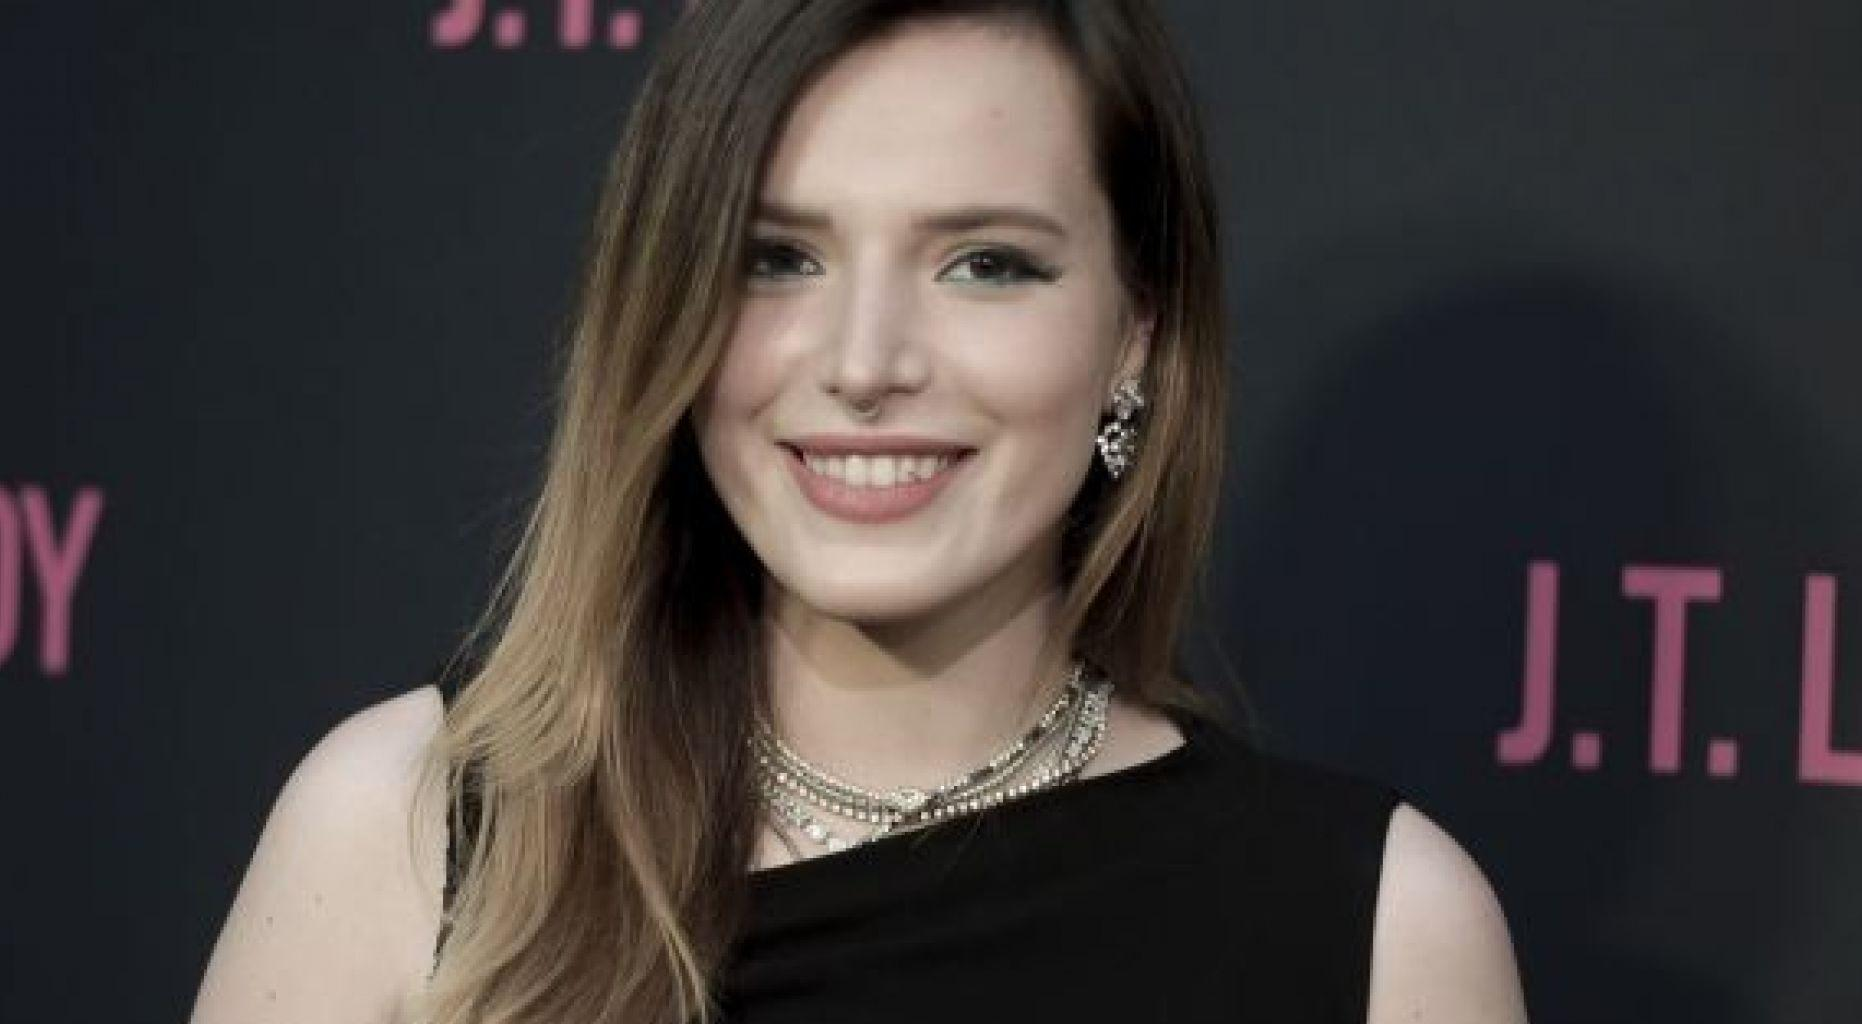 Bella Thorne Apologizes To Sex Workers For OnlyFans Stunt That Made Sit Change Its Rules -- Asks What She Can Do To Help Before Meeting With Company